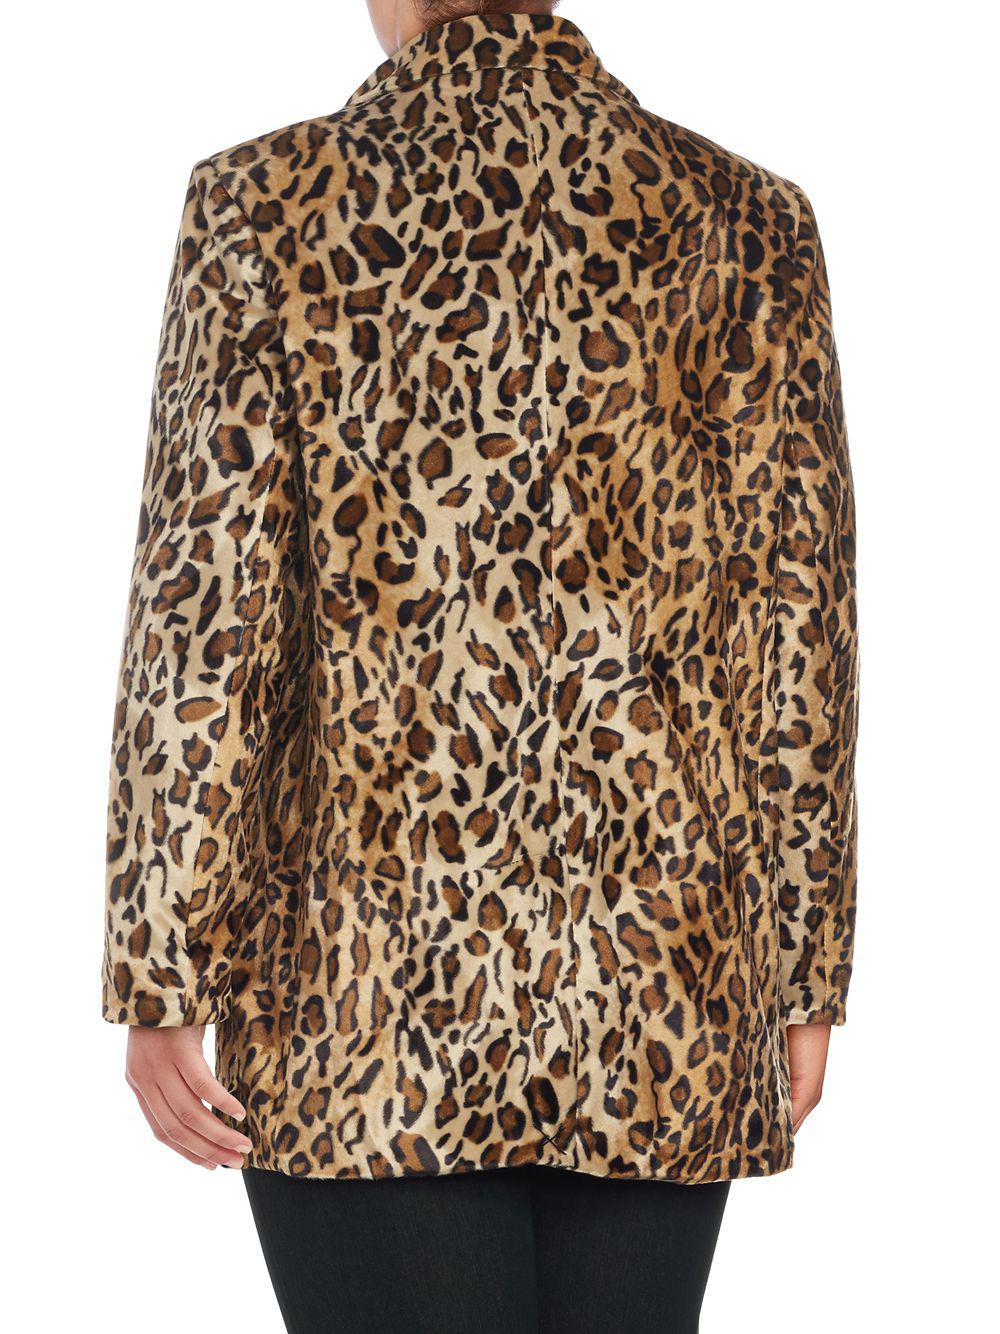 290ac659783d Lord & Taylor - Brown Plus Faux Fur Leopard Printed Jacket - Lyst. View  fullscreen